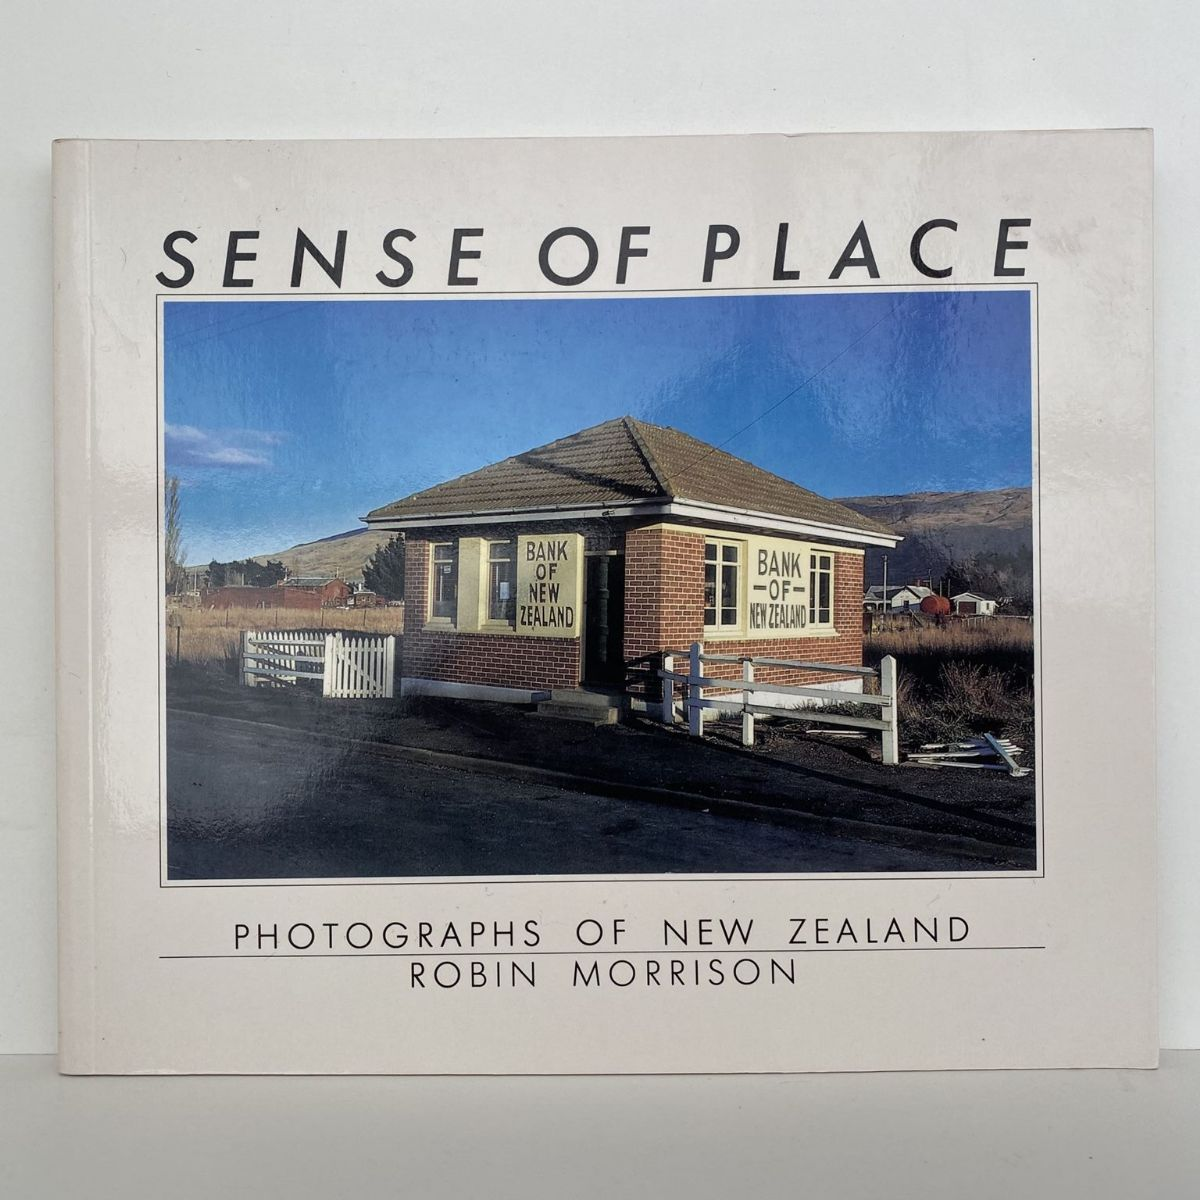 SENSE OF PLACE: Photographs of New Zealand